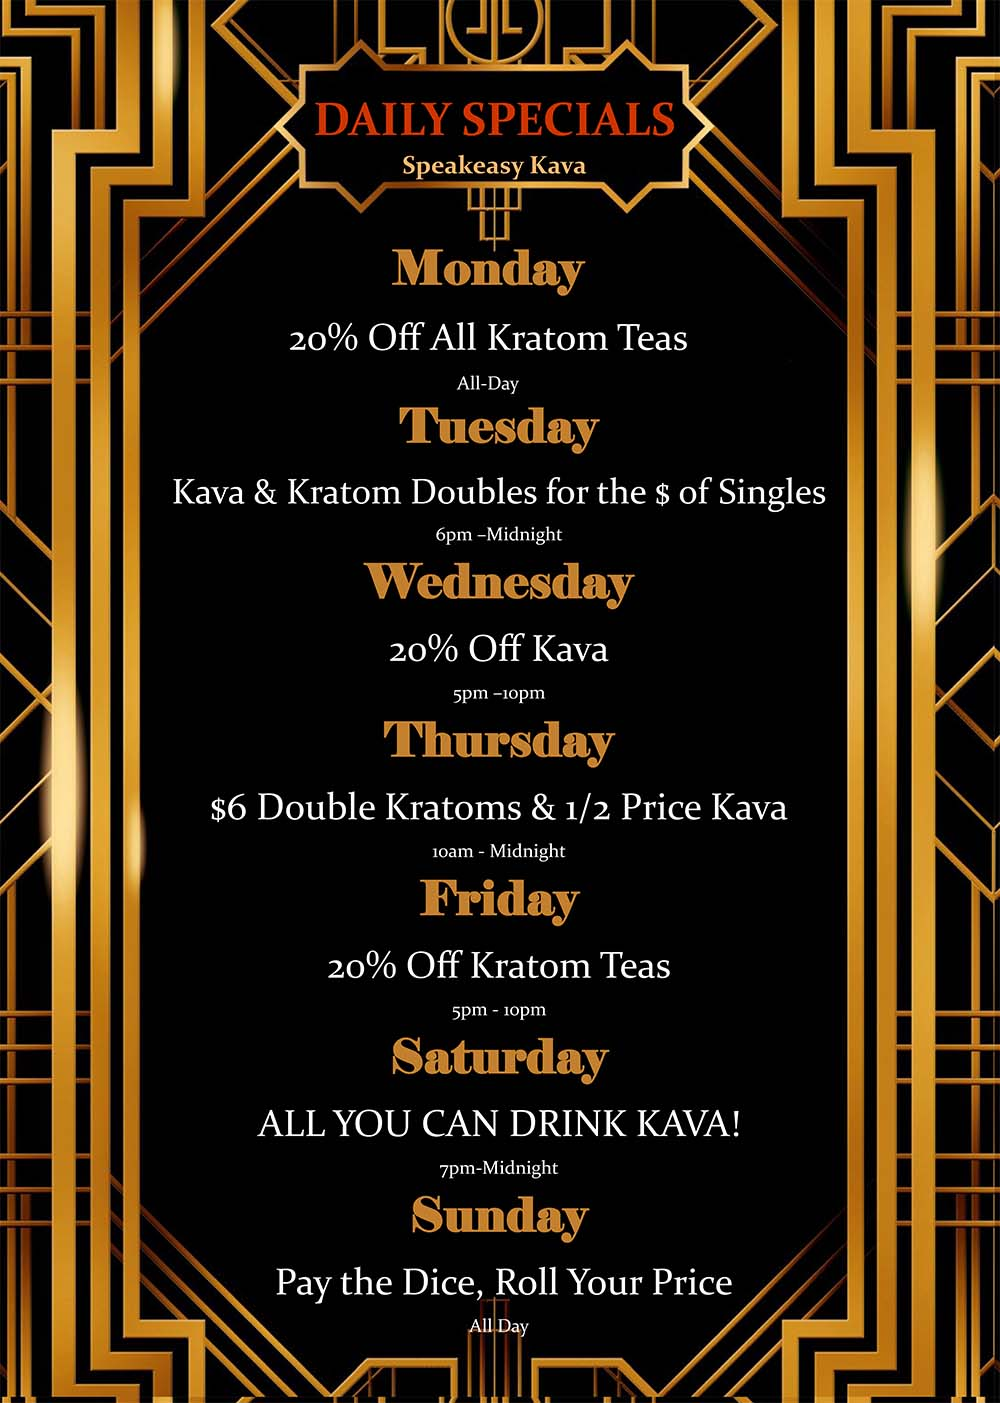 SpeakeasyKava-Daily-Specials-1-2